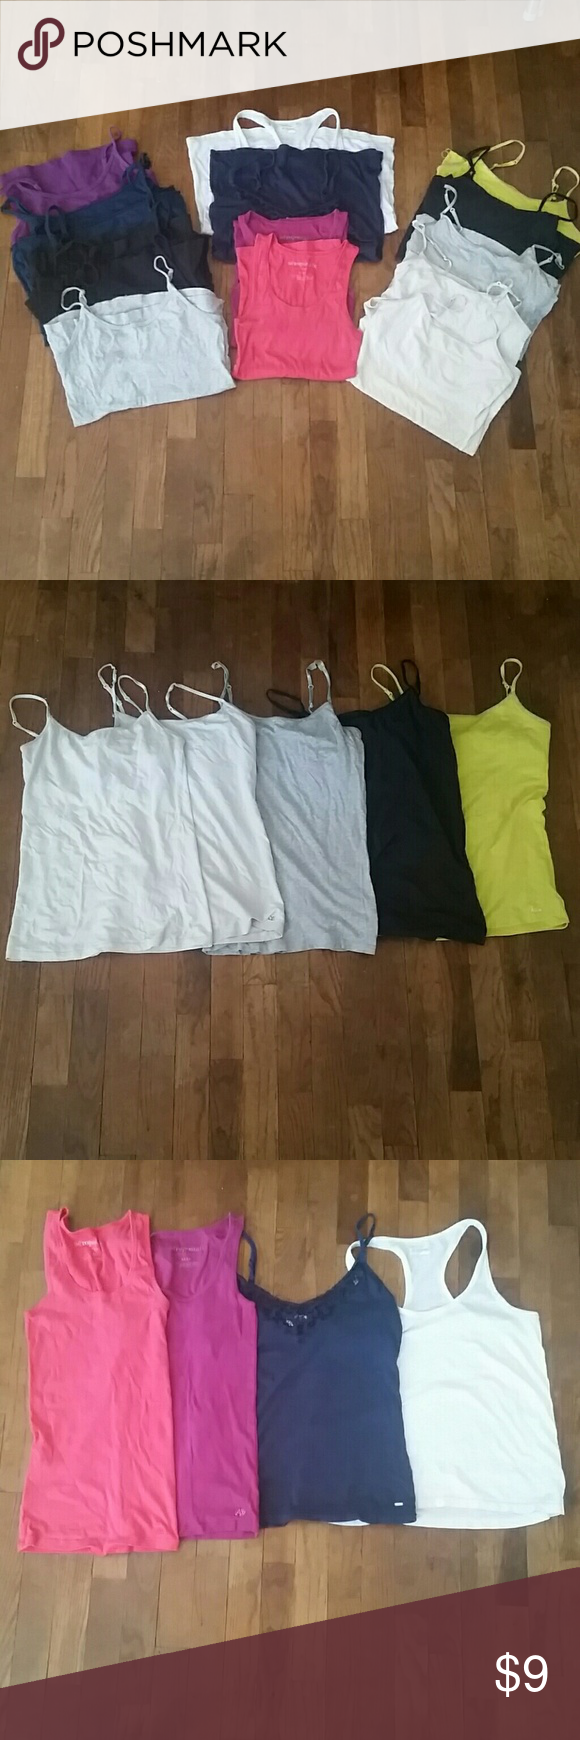 Lot of 16 camis Here's a bang for your buck, 16 camis for the price of $9! Can't beat that! All have been preloved and some look quite worn, whether that be a loose seam on the bottom, an untwisted strap, or a discoloration from washing. In the picture with the 5 camis, those are Aeropostale shelf camis the two white ones are mediums and the other 3 are larges. In the picture with the 4 tanks those are just various cuts of Aeropostale tanks in size medium. In the last picture those are all…